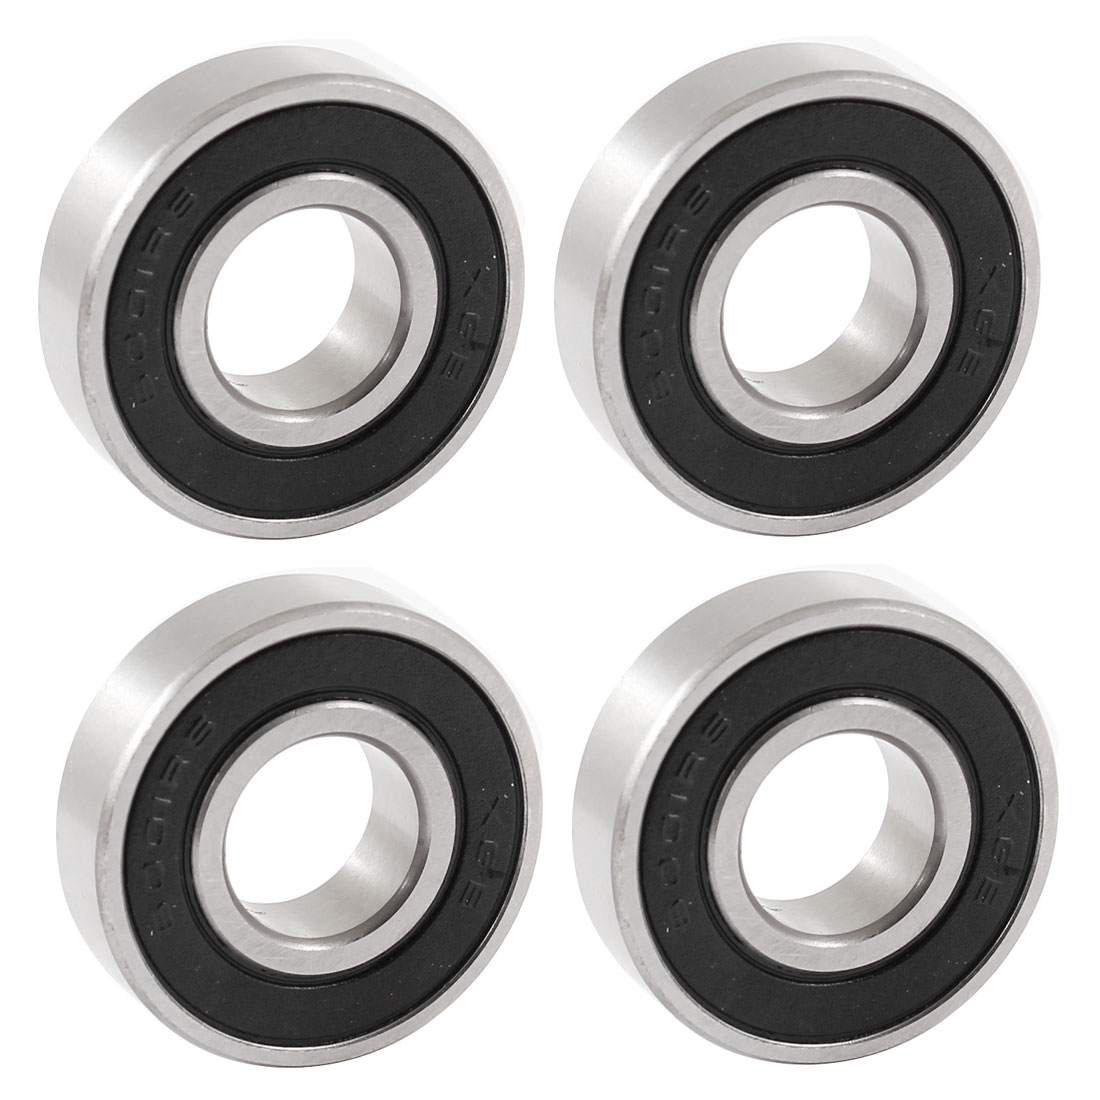 4 Pcs 6001RS 12mm x 28mm x 8mm Rubber Sealed Single Row Deep Groove Ball Bearing for Electric Motor